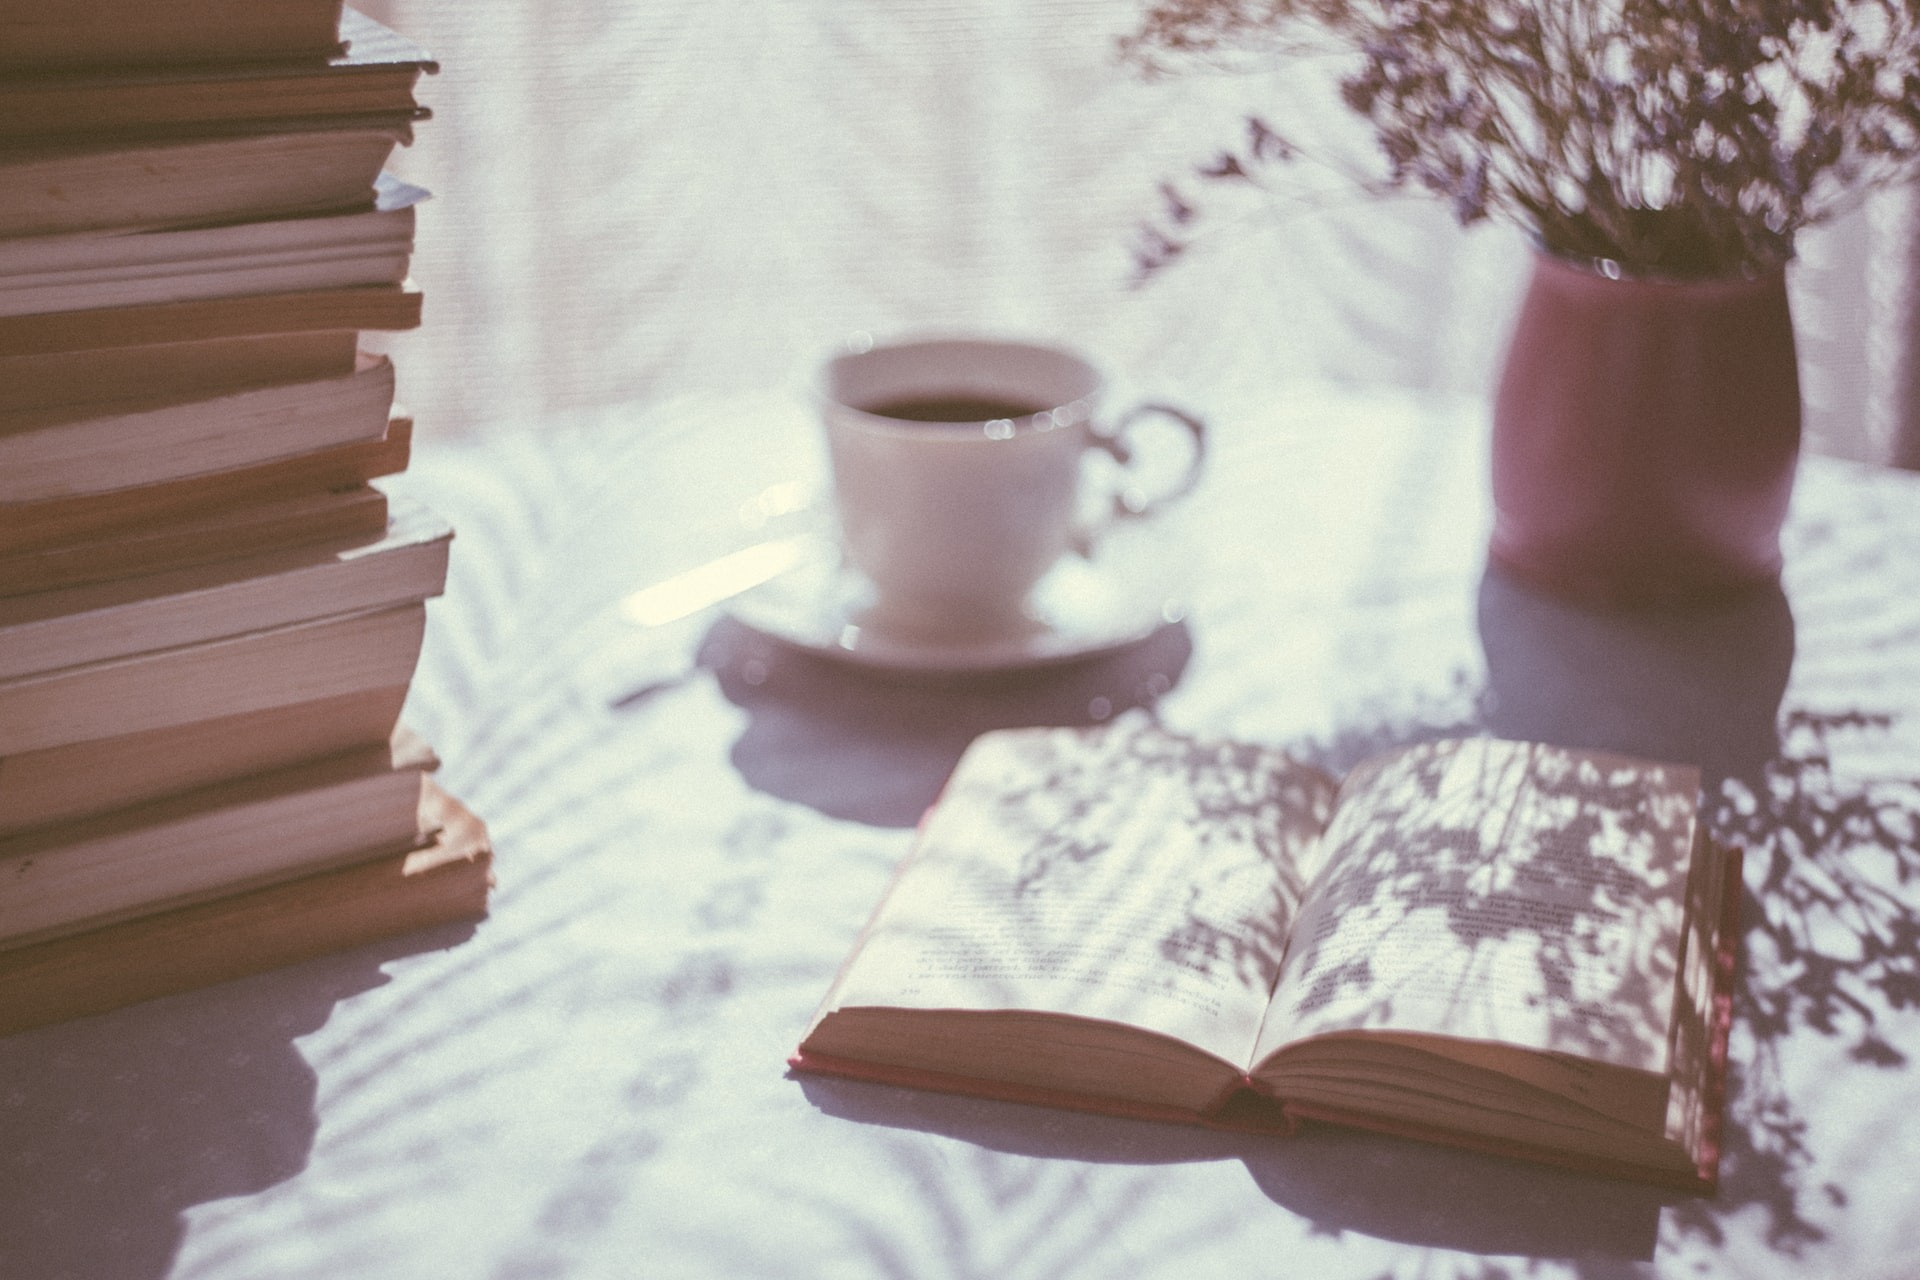 old books and coffee on the table